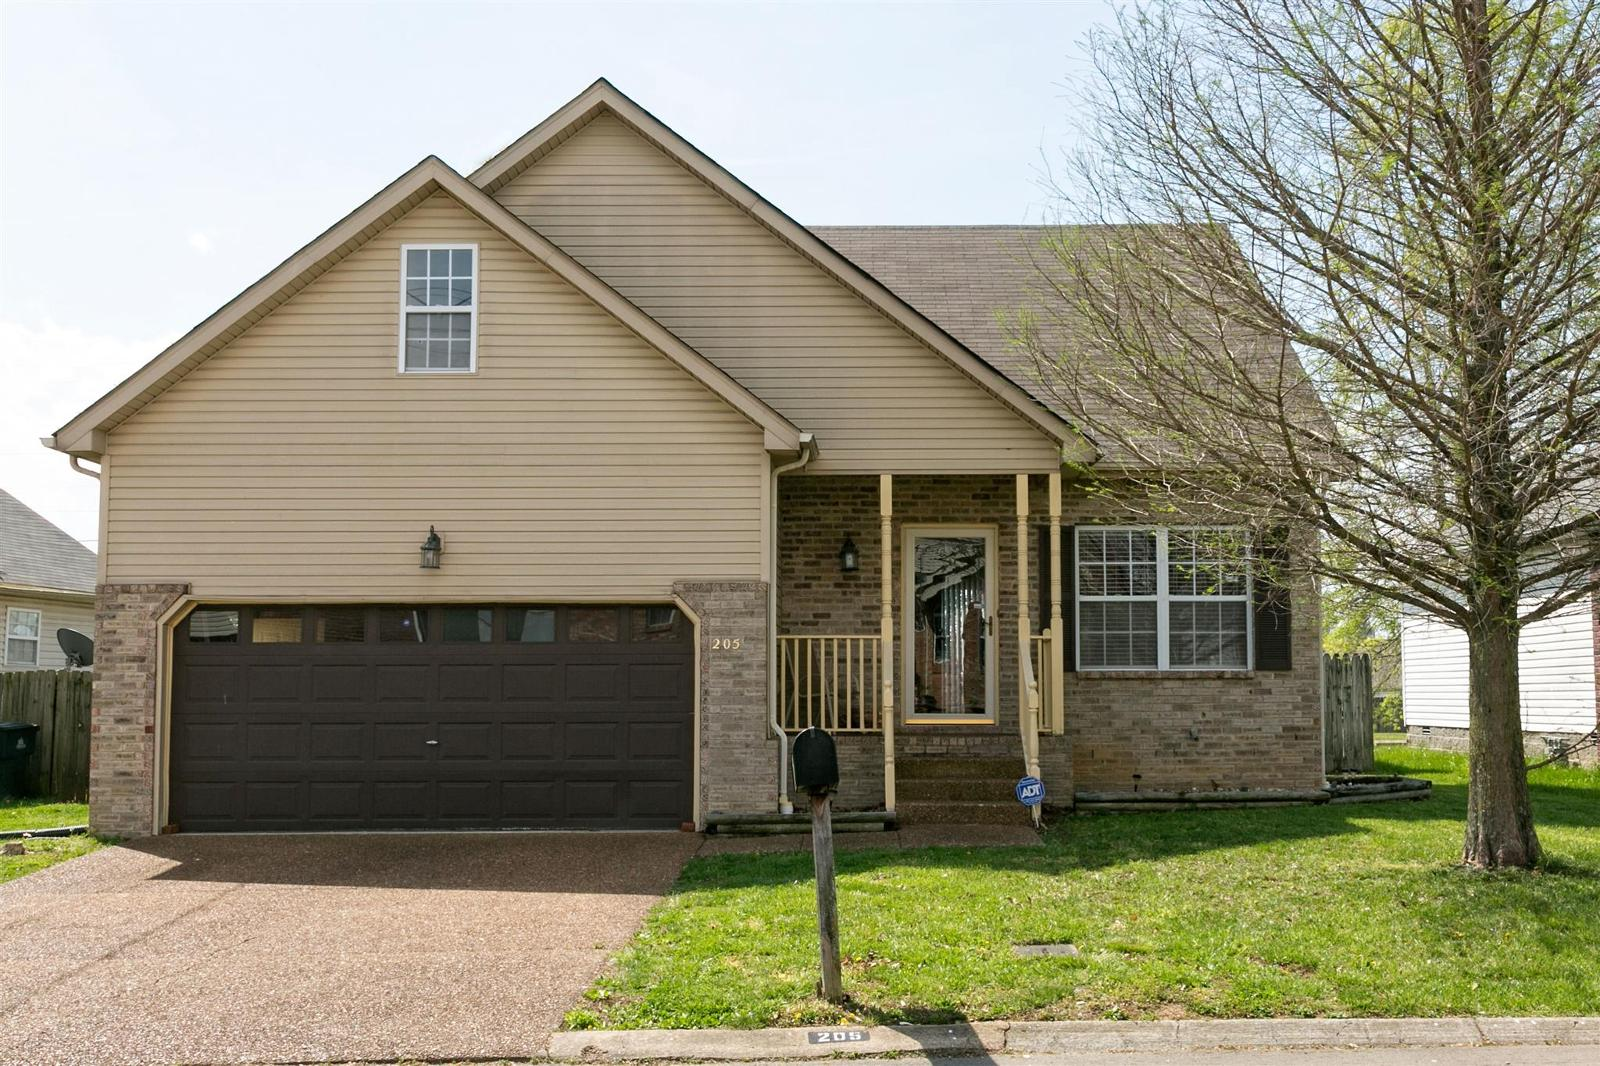 New Homes For Sale Antioch Tn